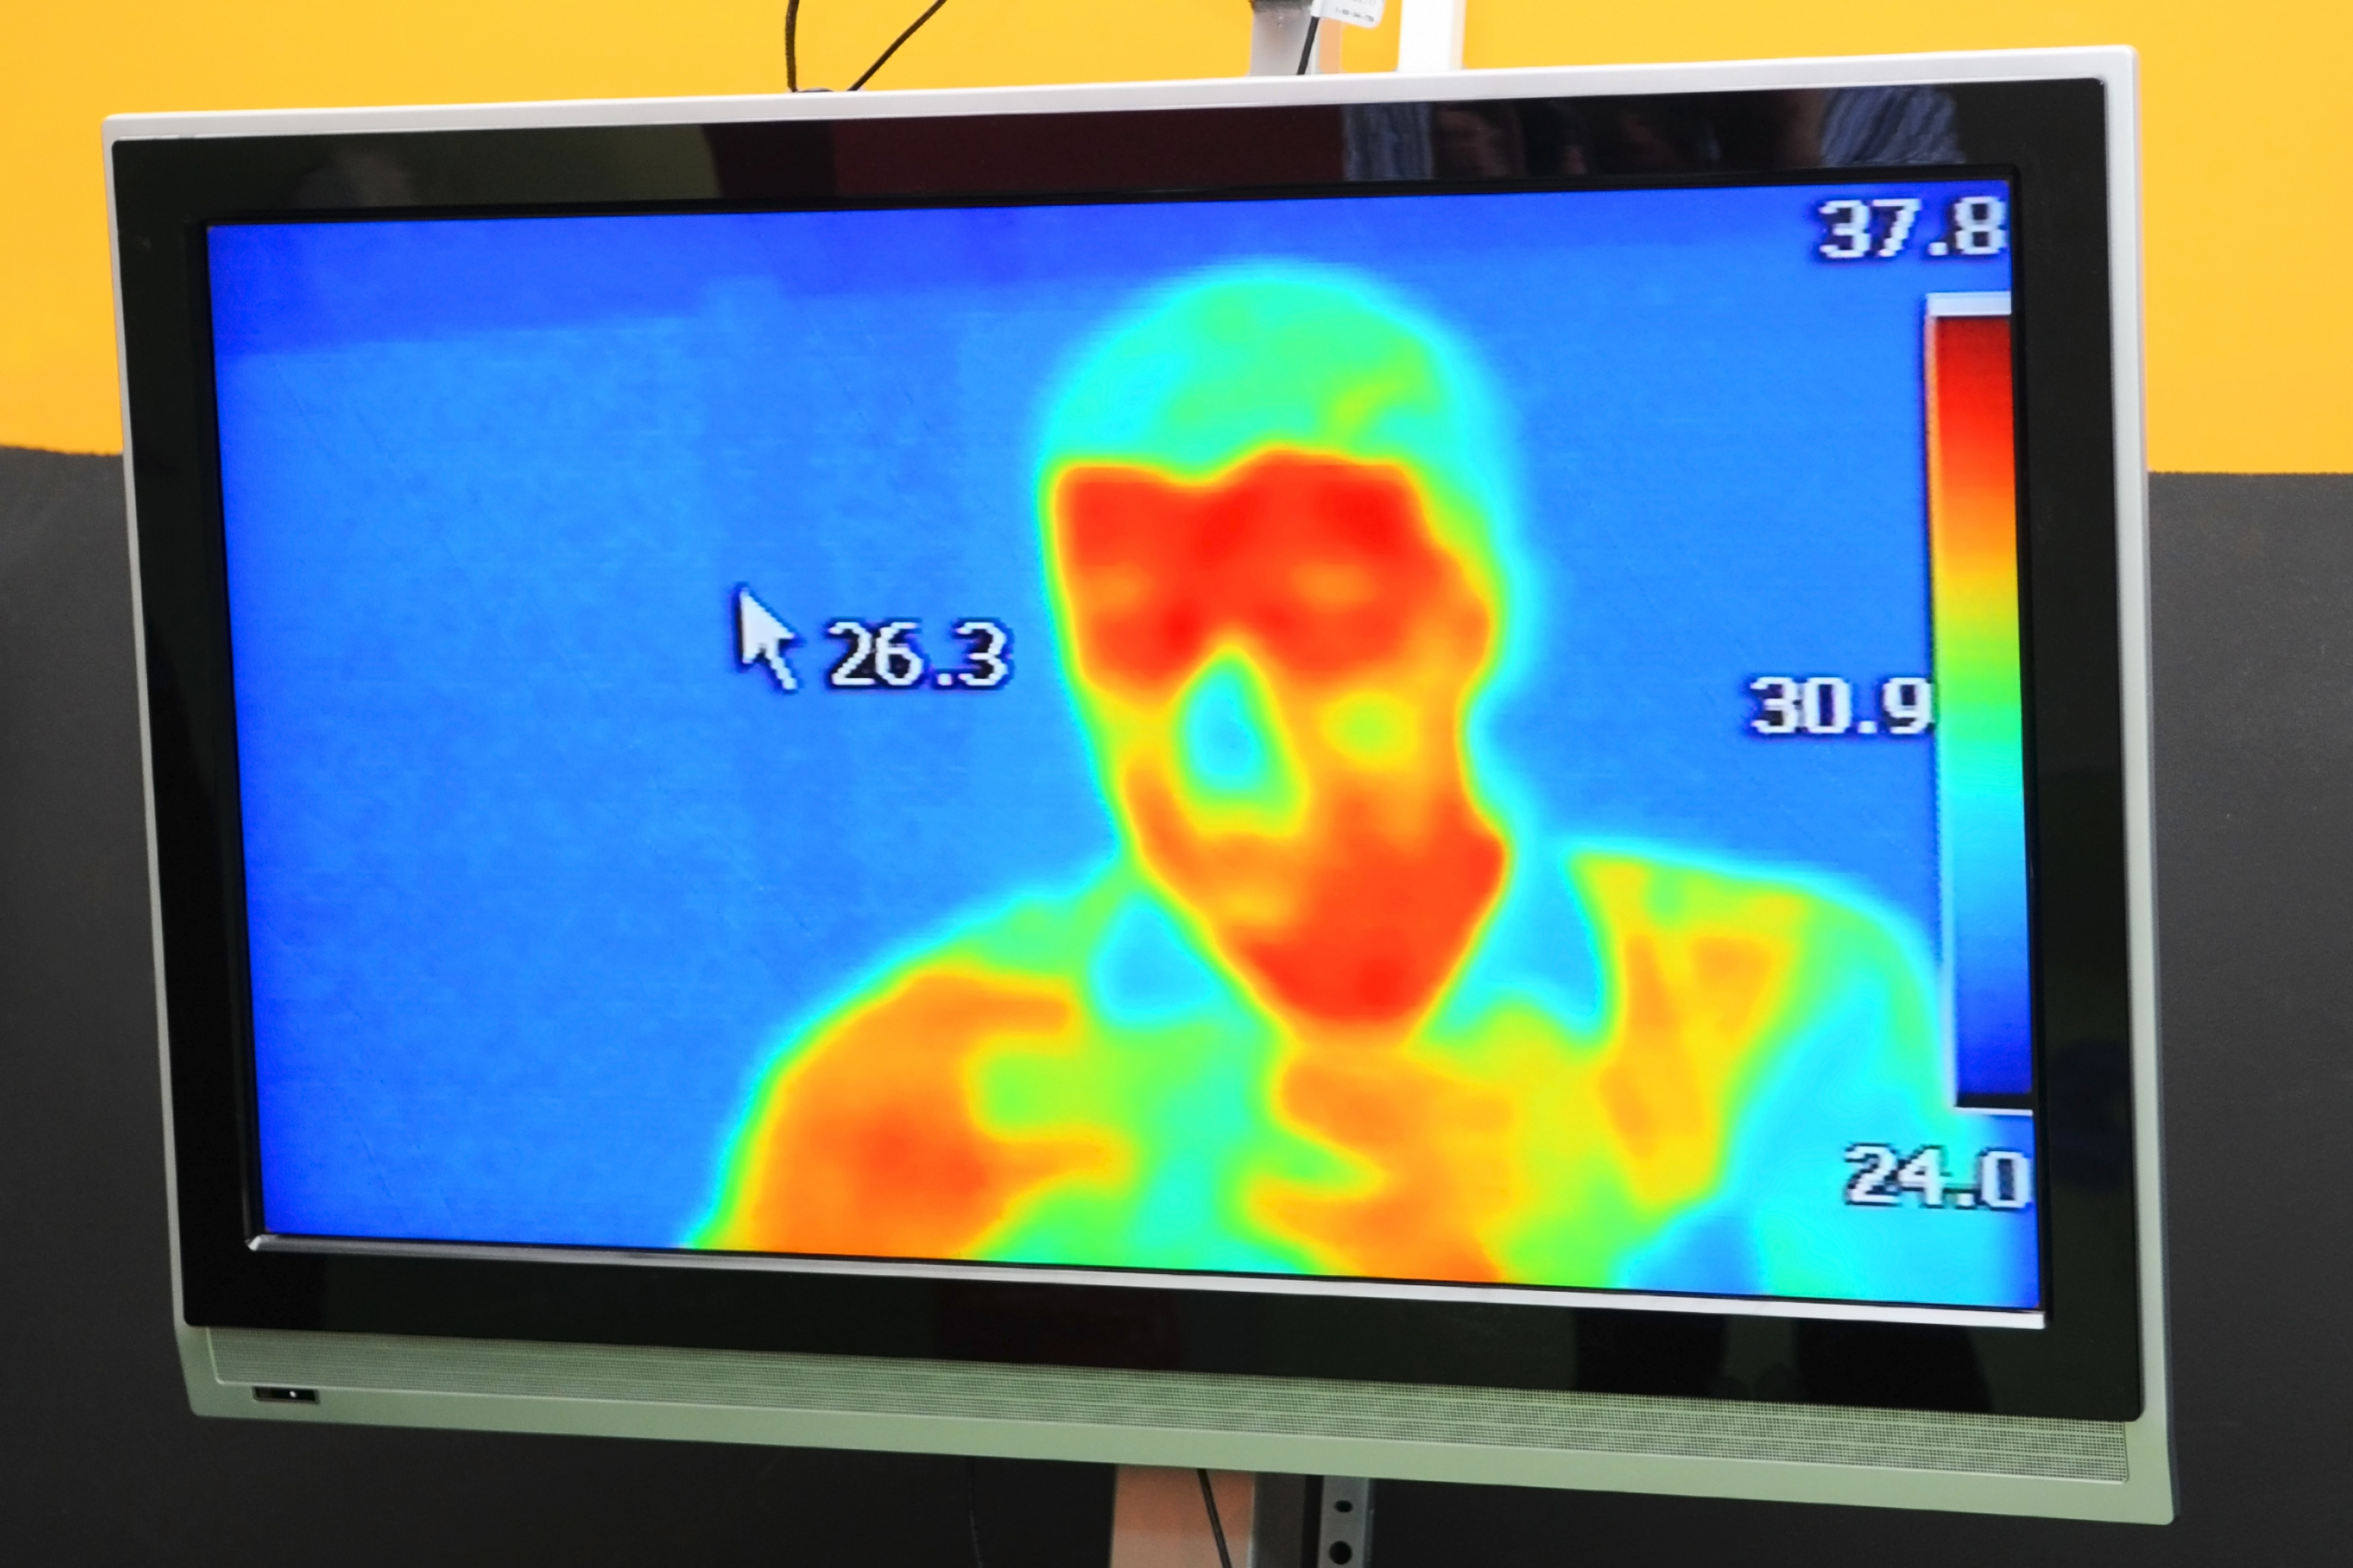 How to Improve Building Security with Thermal Imaging Cameras